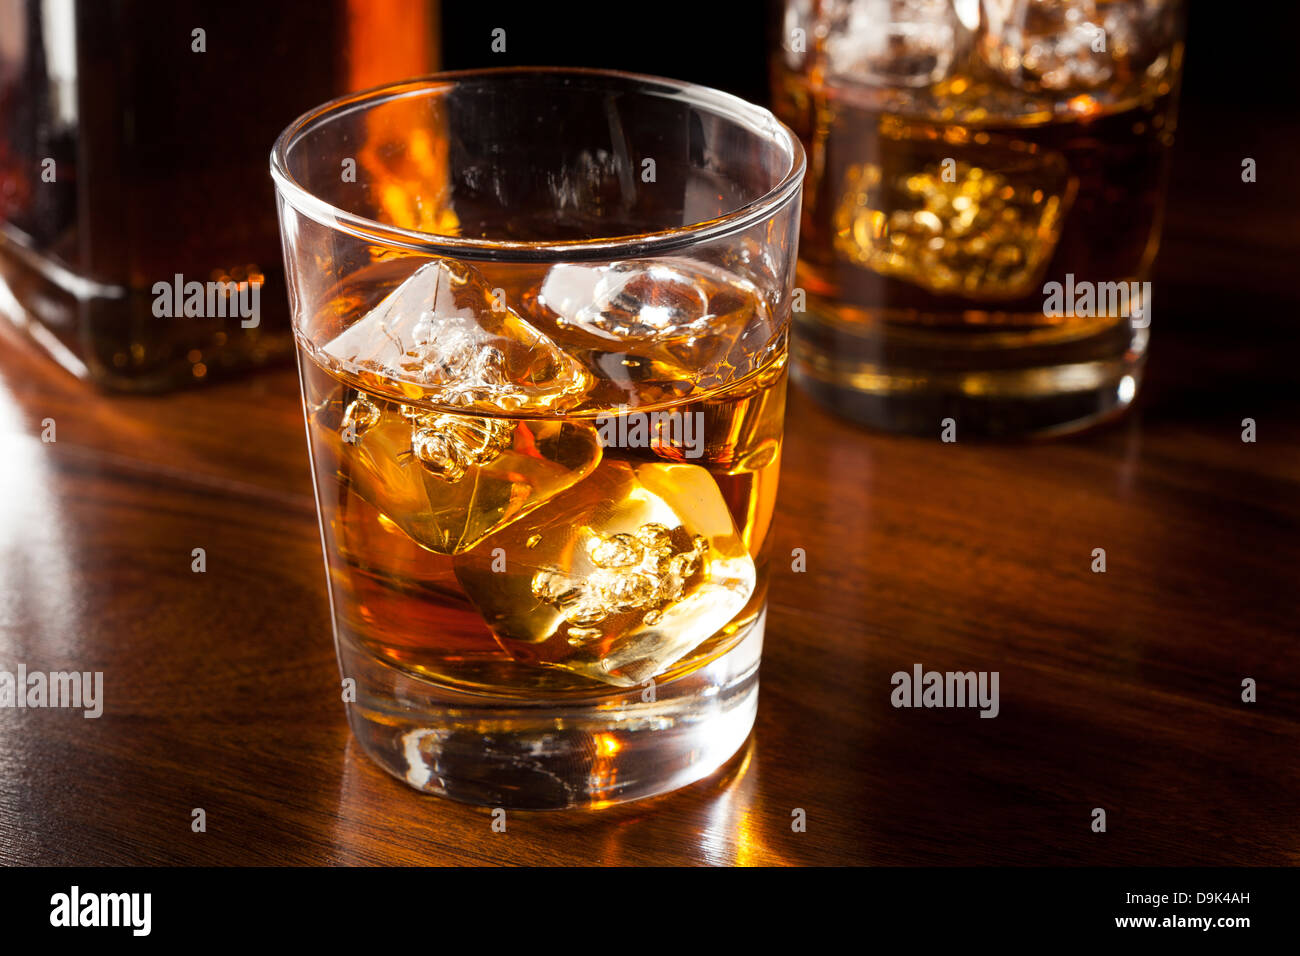 Golden Brown Whisky on the rocks in a glass - Stock Image